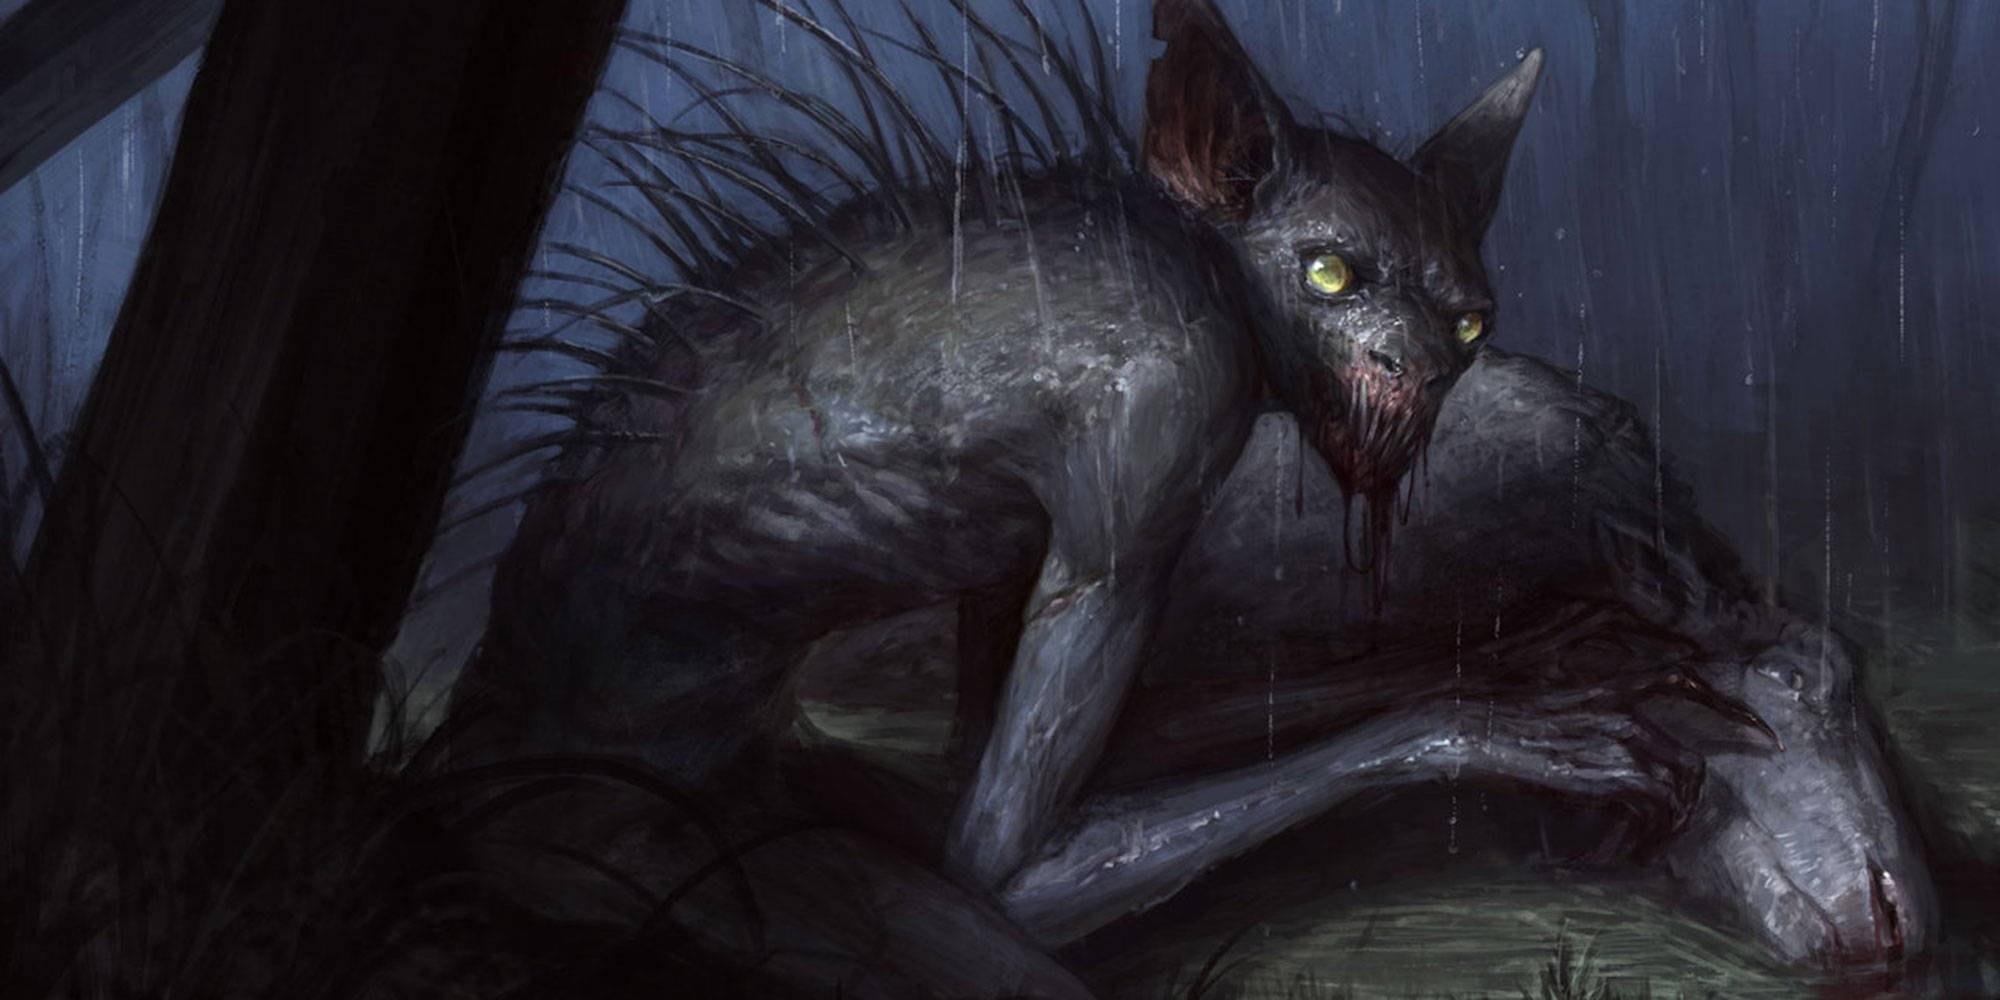 Mysterious Creatures & Myths From Around the World